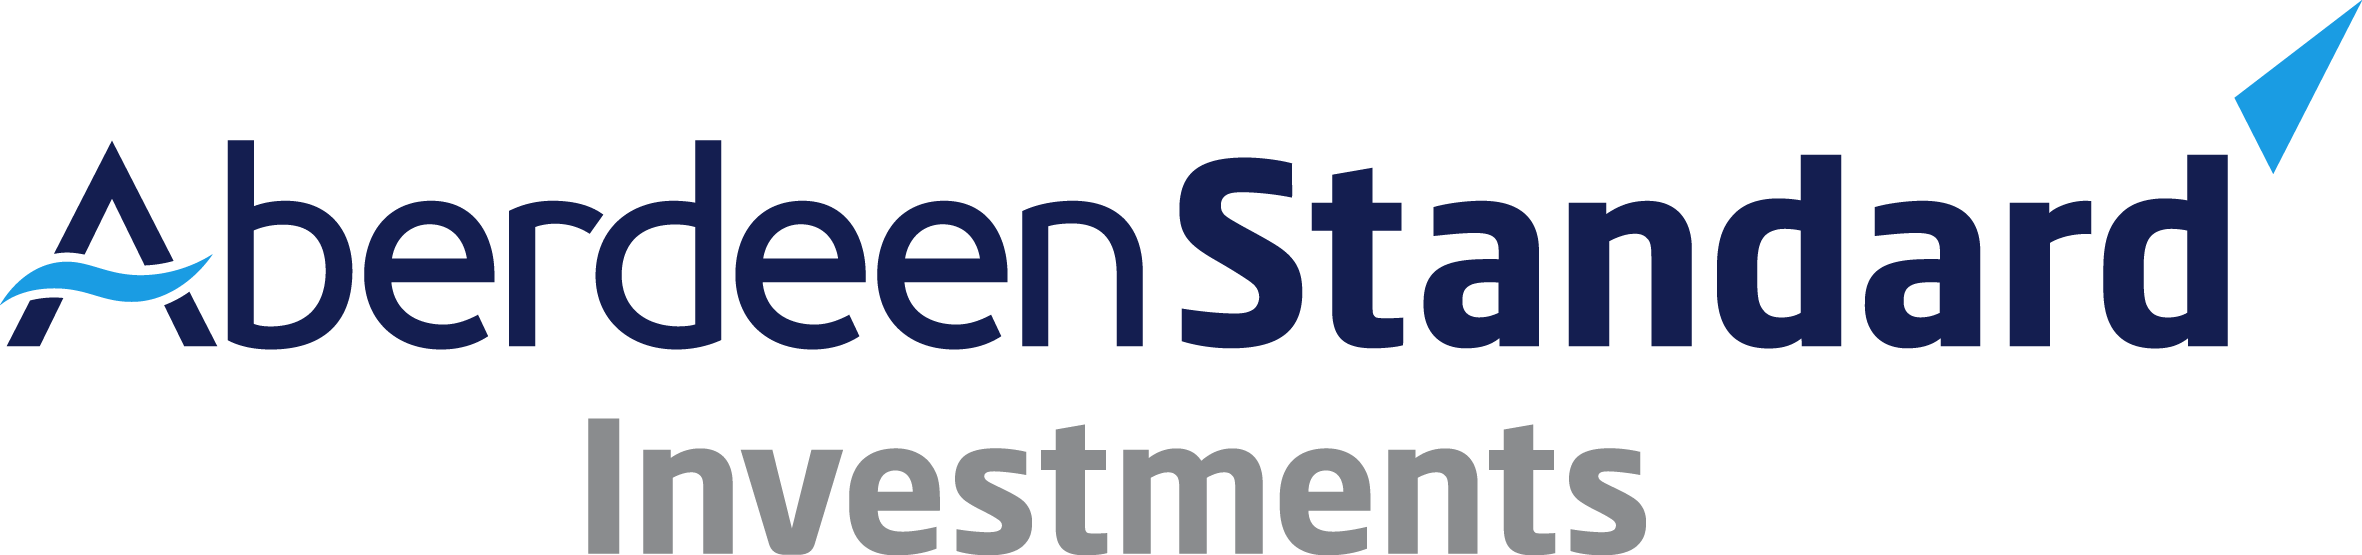 Aberdeen New India Investment Trust PLC Logo